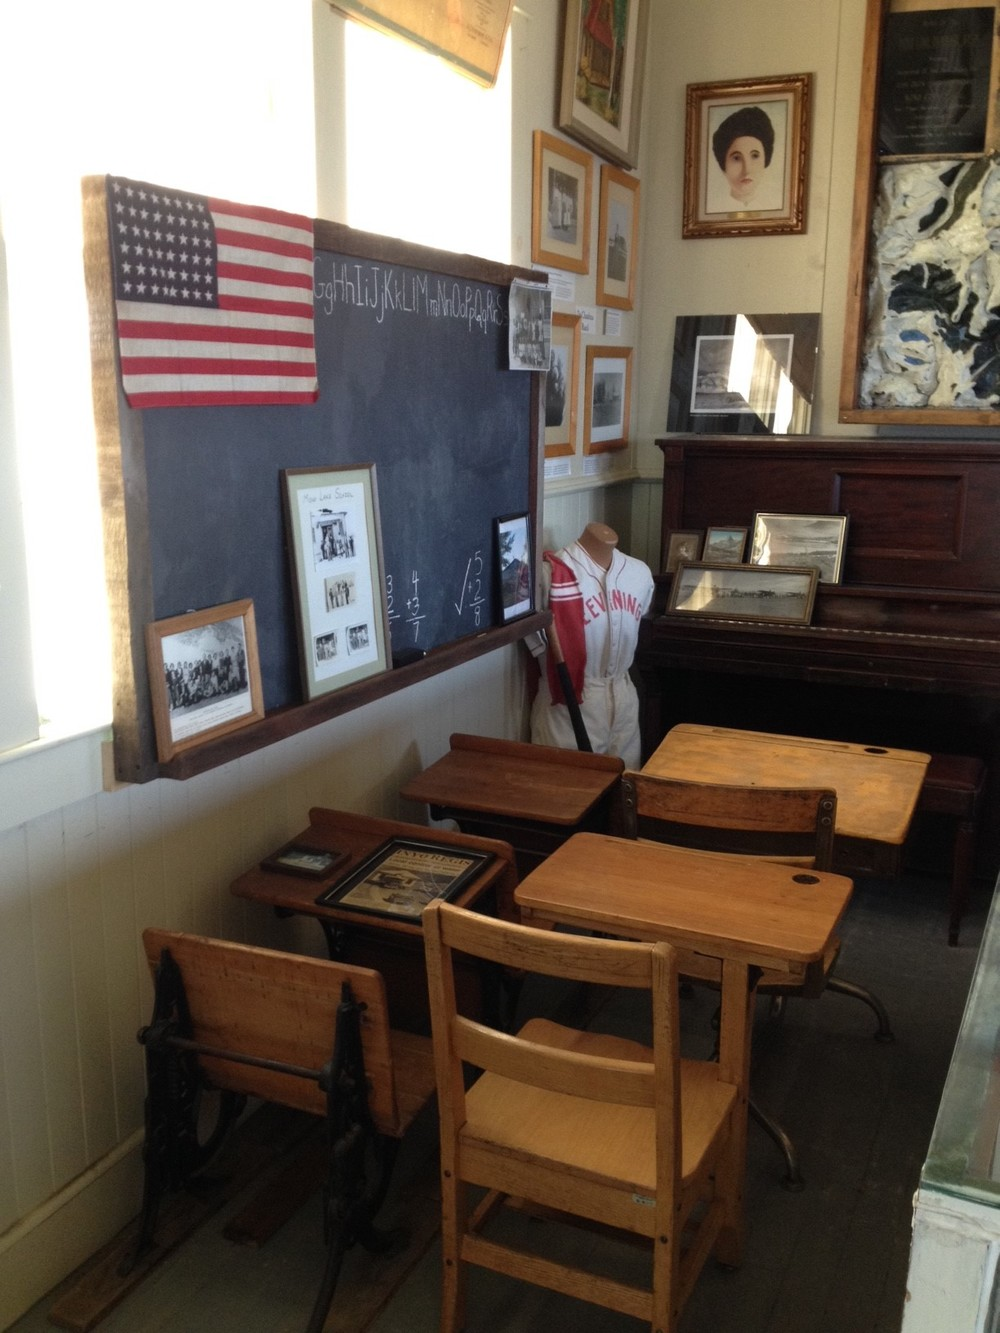 school desks by blackboard and baseball uniform on mannikin.JPG